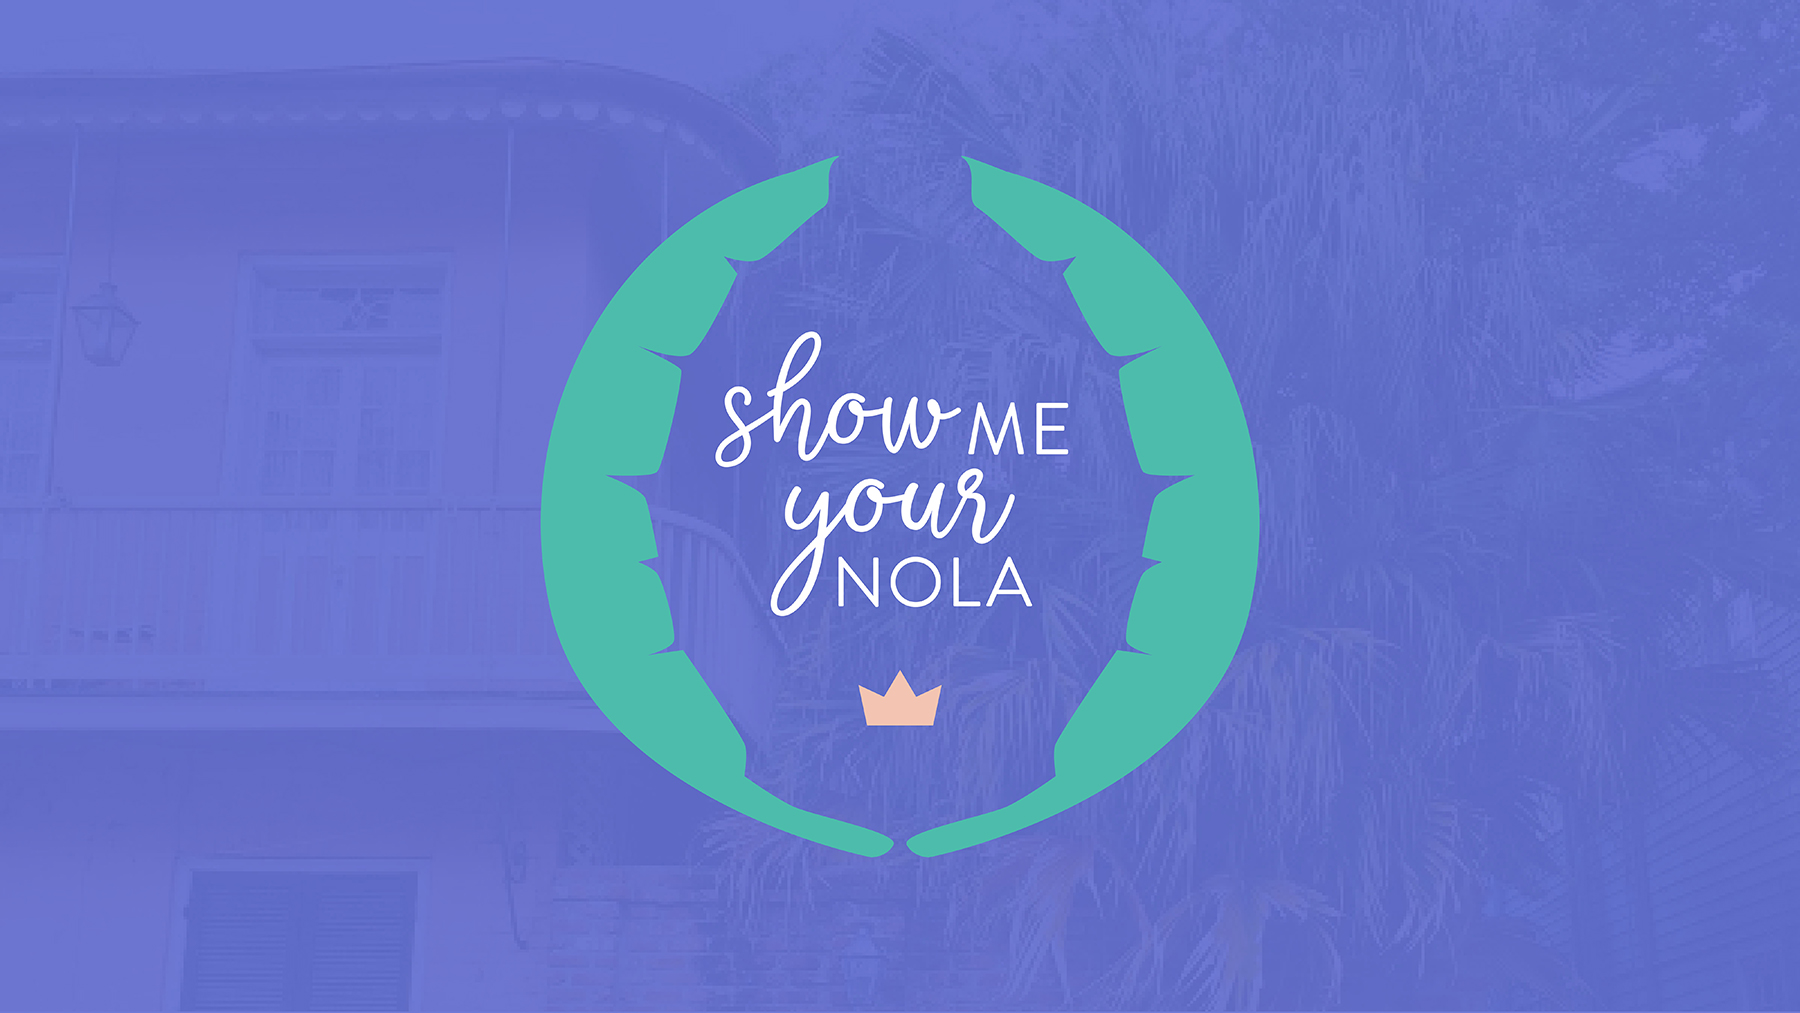 a clean, simple and chic logo that also expresses the fun, whimsy and magic of New Orleans